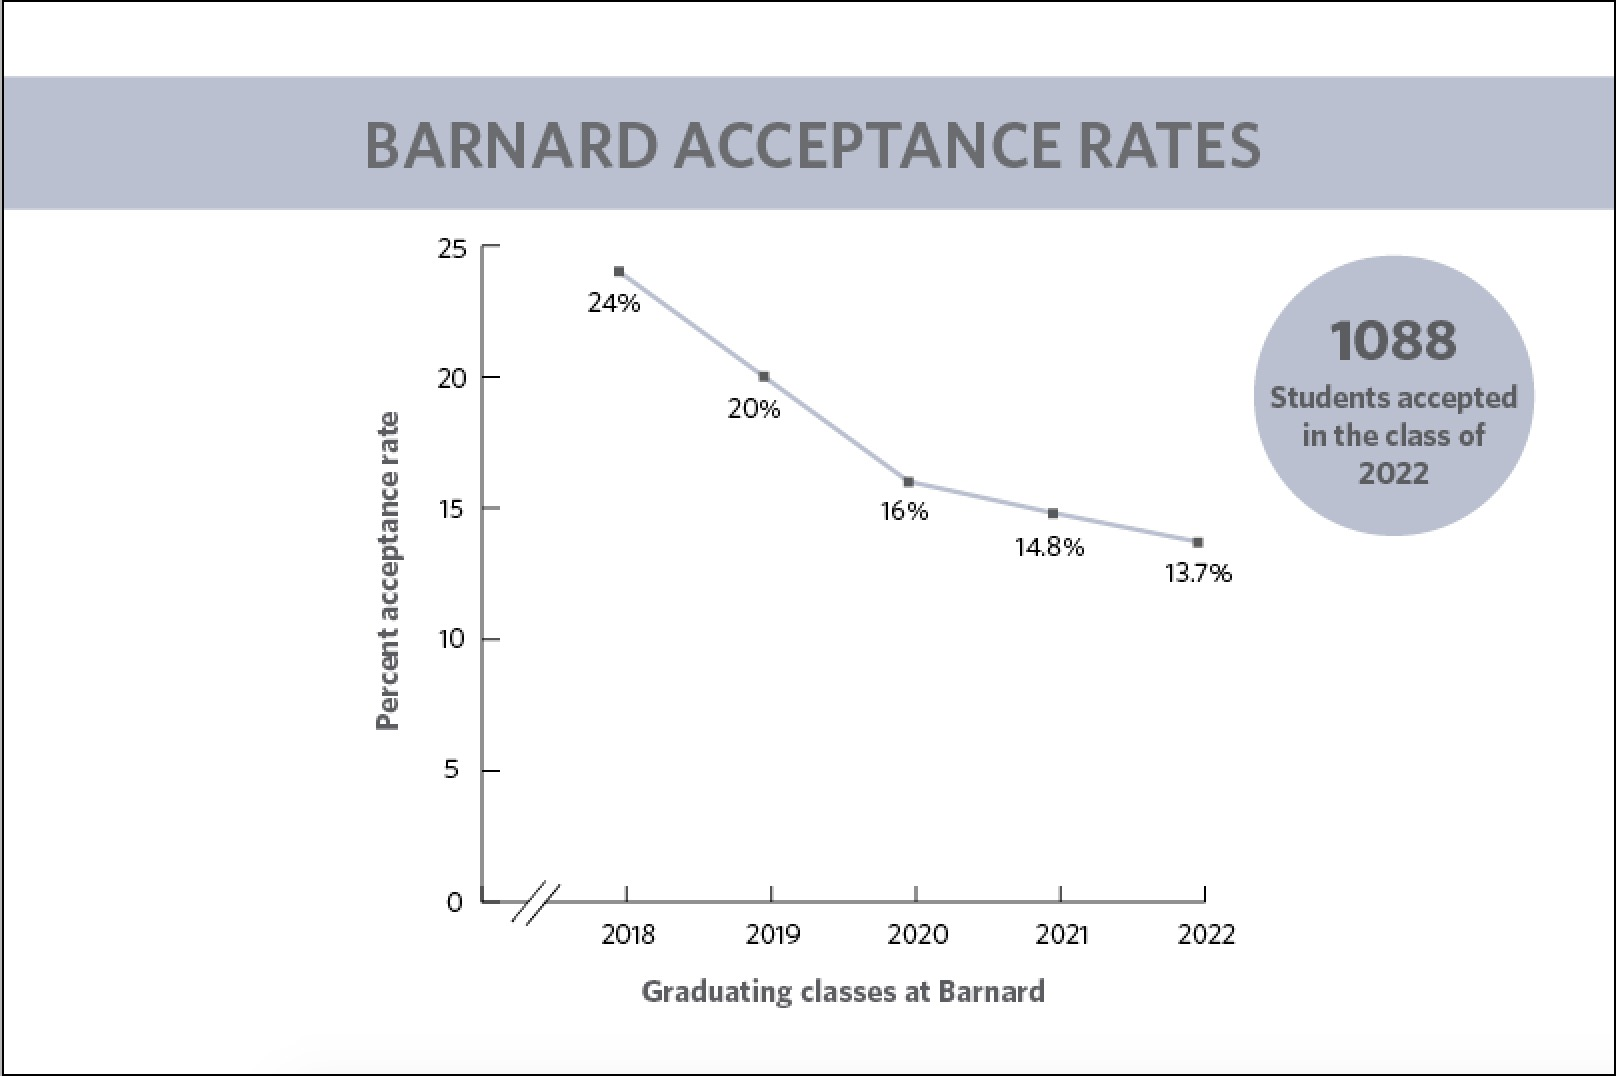 barnard admissions rate drops to 13 7 percent for class of 2022